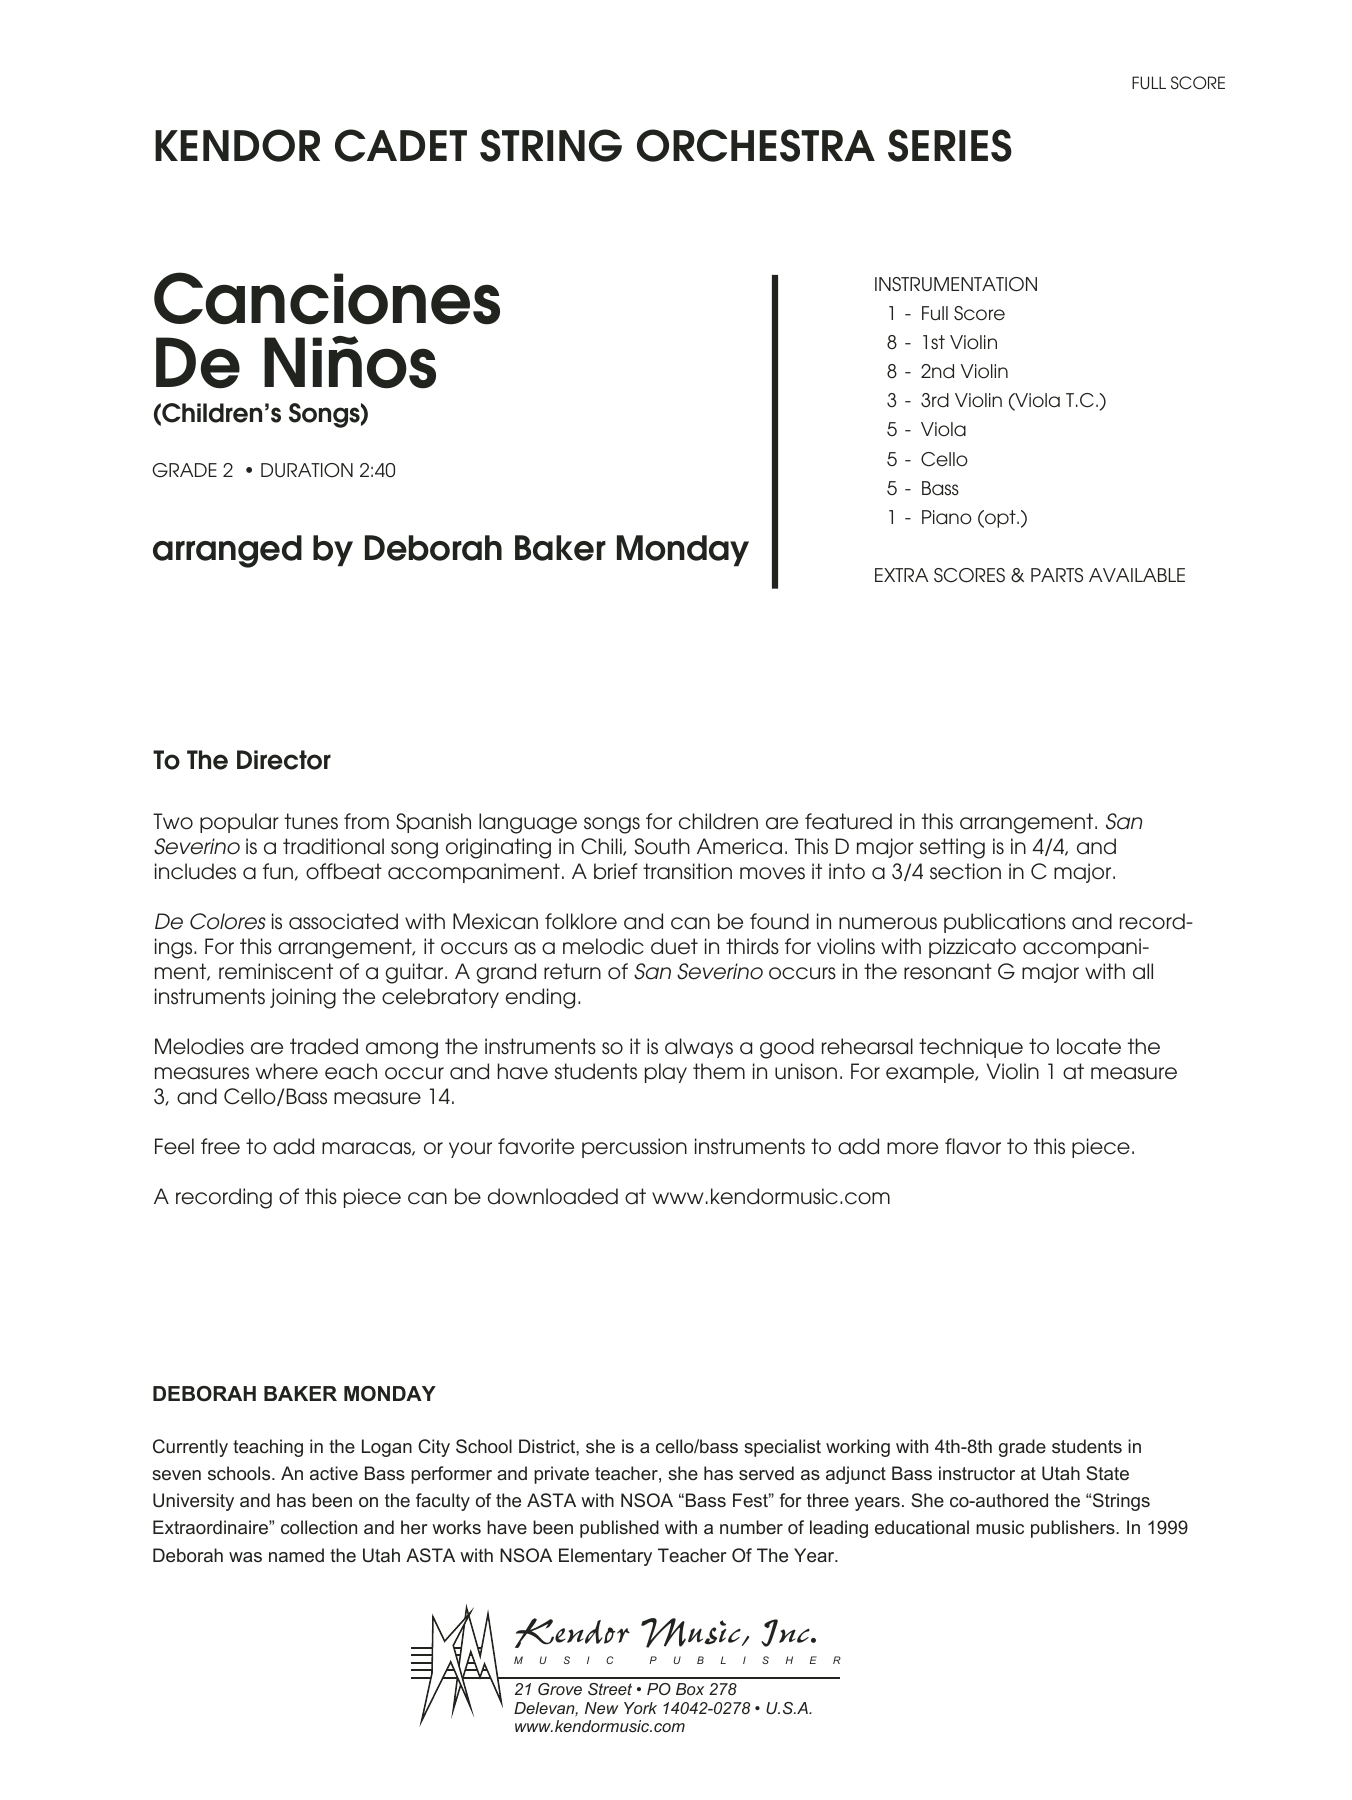 Canciones De Ninos (COMPLETE) sheet music for orchestra by Deborah Baker Monday. Score Image Preview.